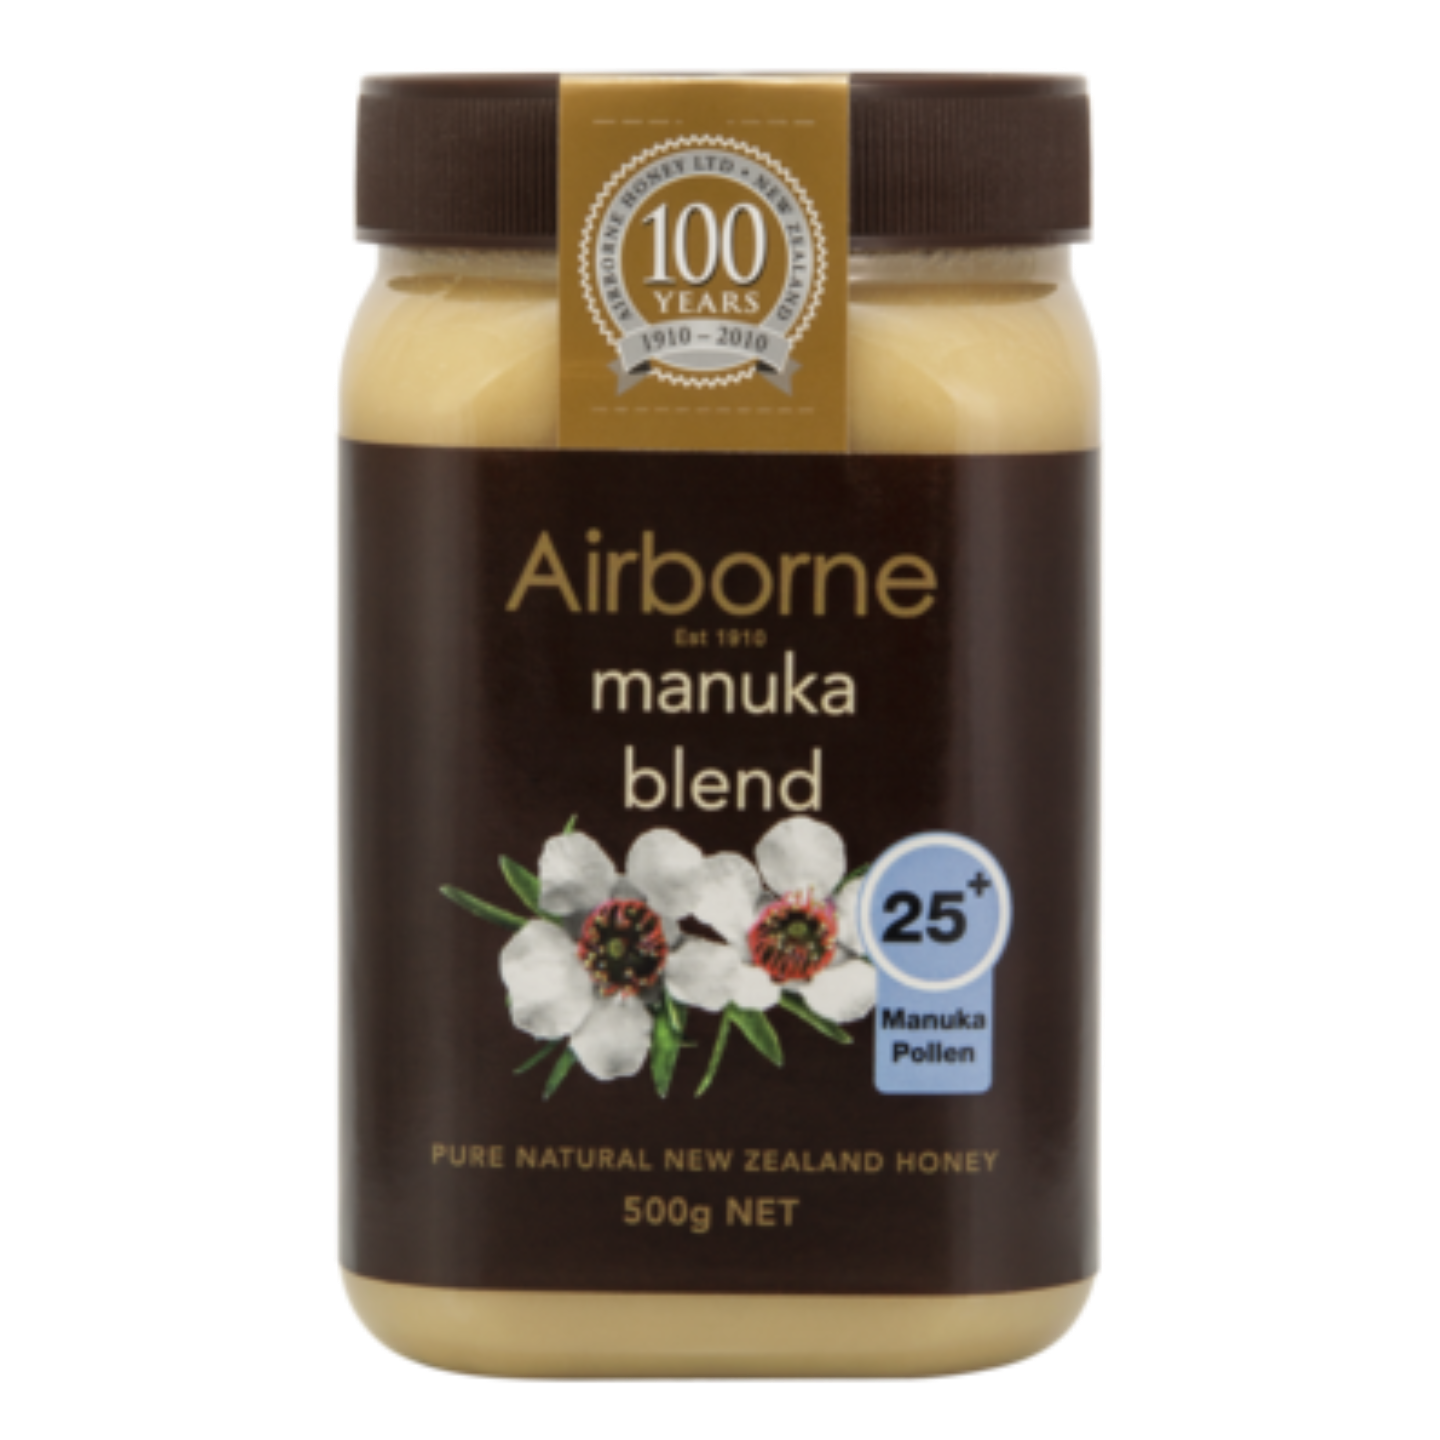 Airborne Health Manuka Blend 25+ Honey 500g